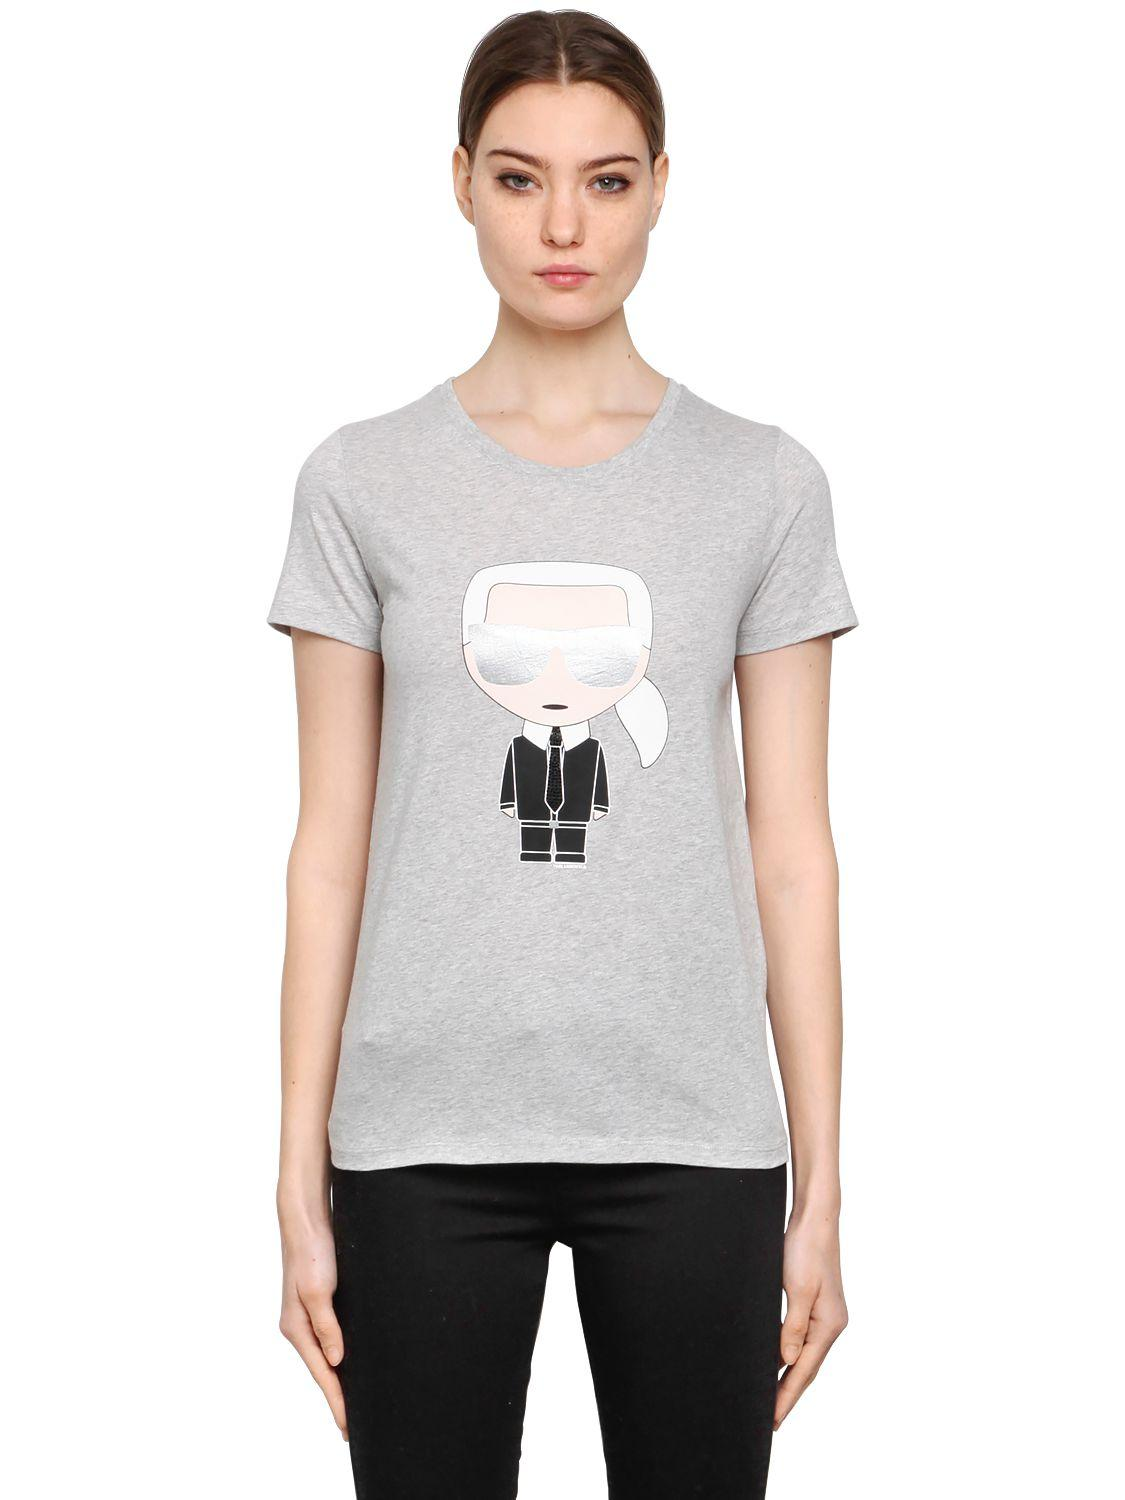 karl lagerfeld ikonik karl cotton jersey t shirt in gray. Black Bedroom Furniture Sets. Home Design Ideas